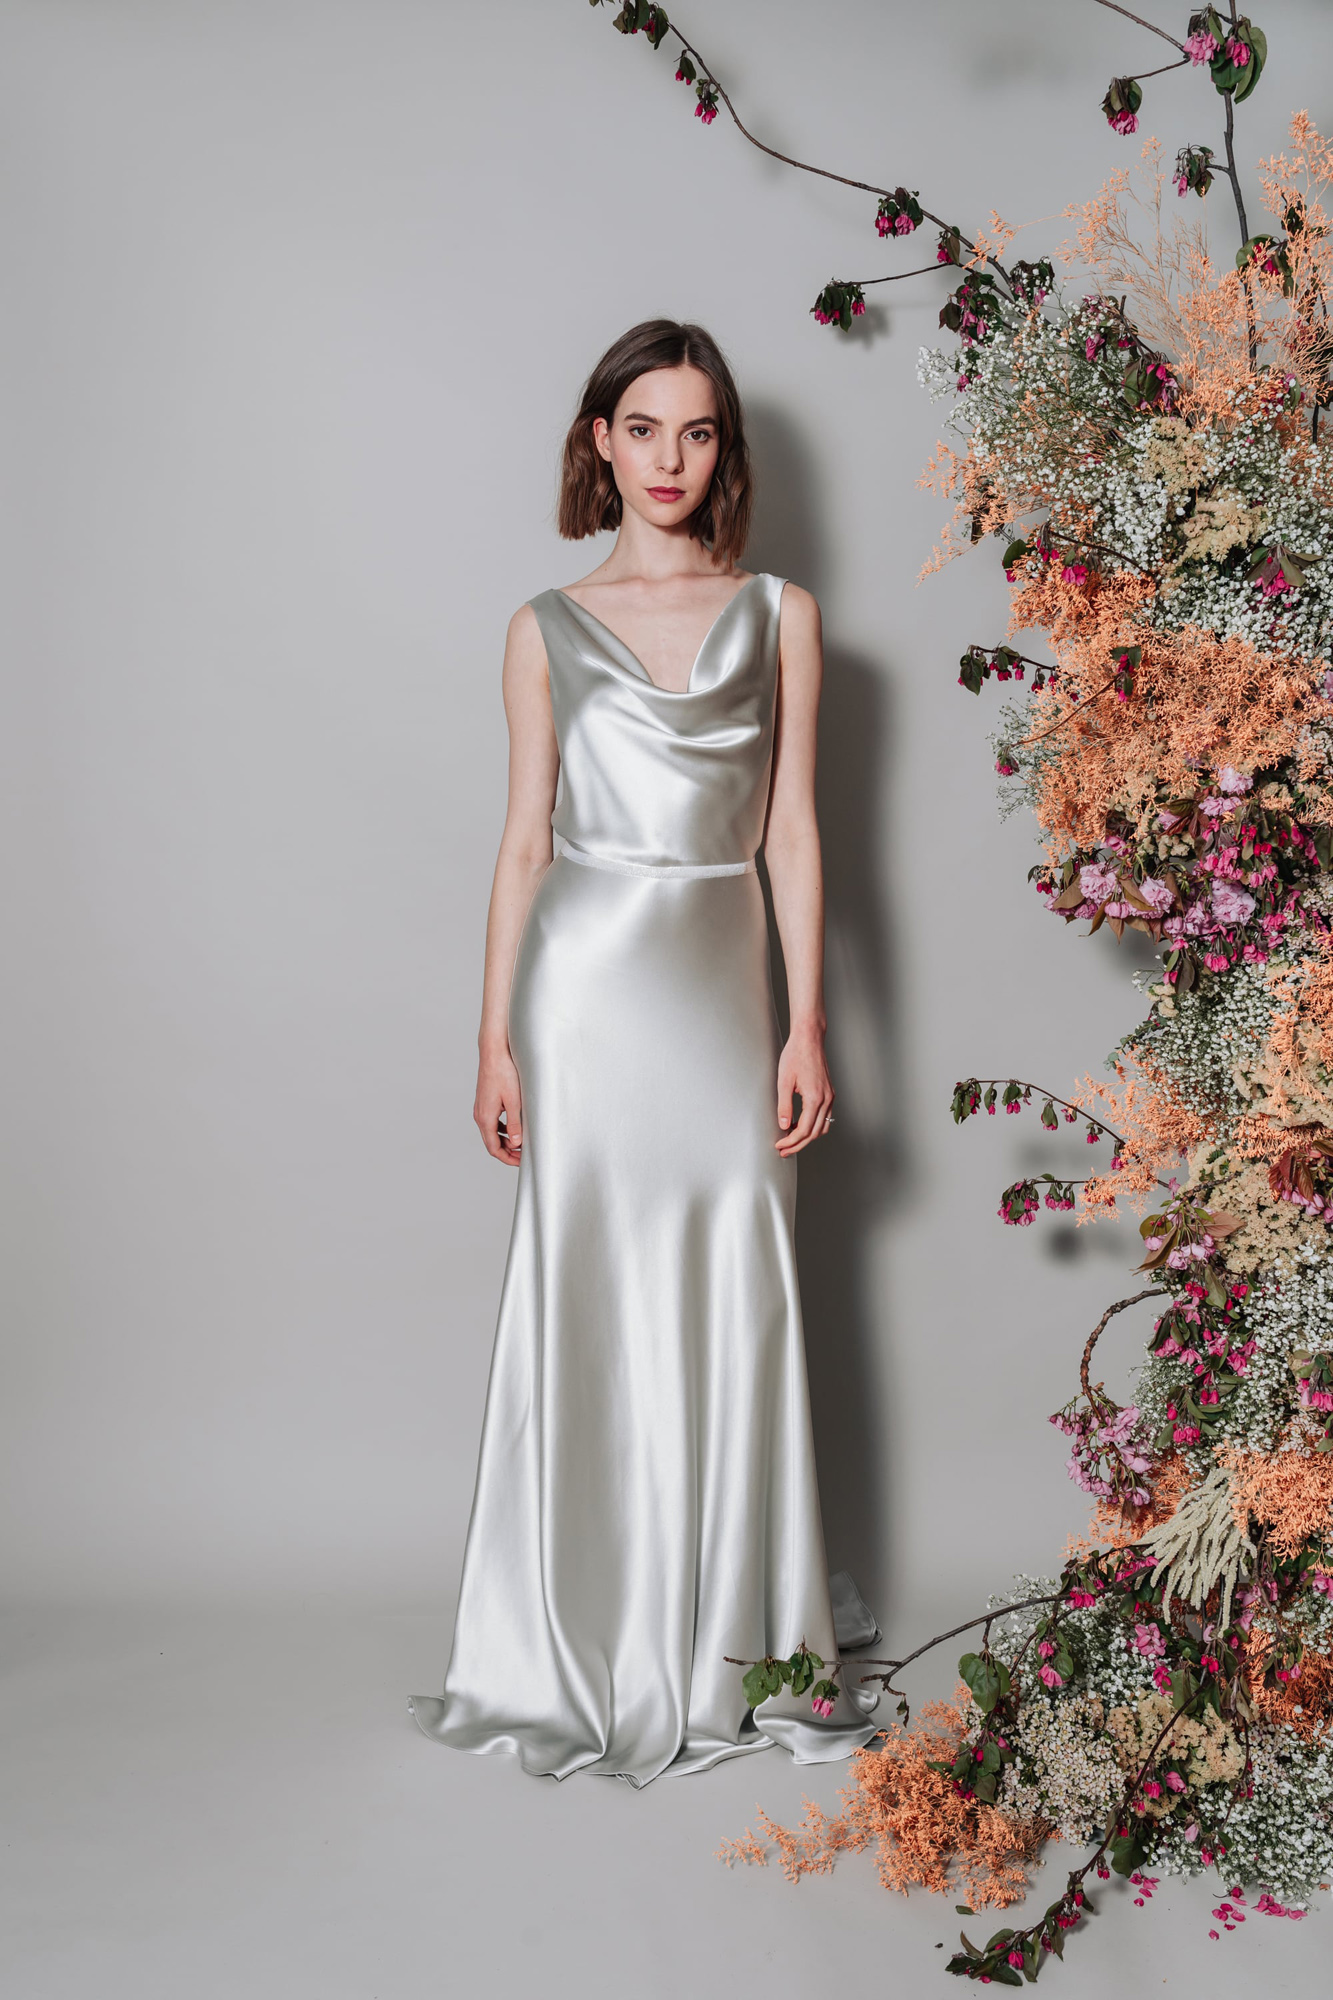 Kate-Beaumont-Sheffield-Sweet-Violet-Cowl-Neck-Bias-Cut-Silk-Wedding-Gown-7.jpg